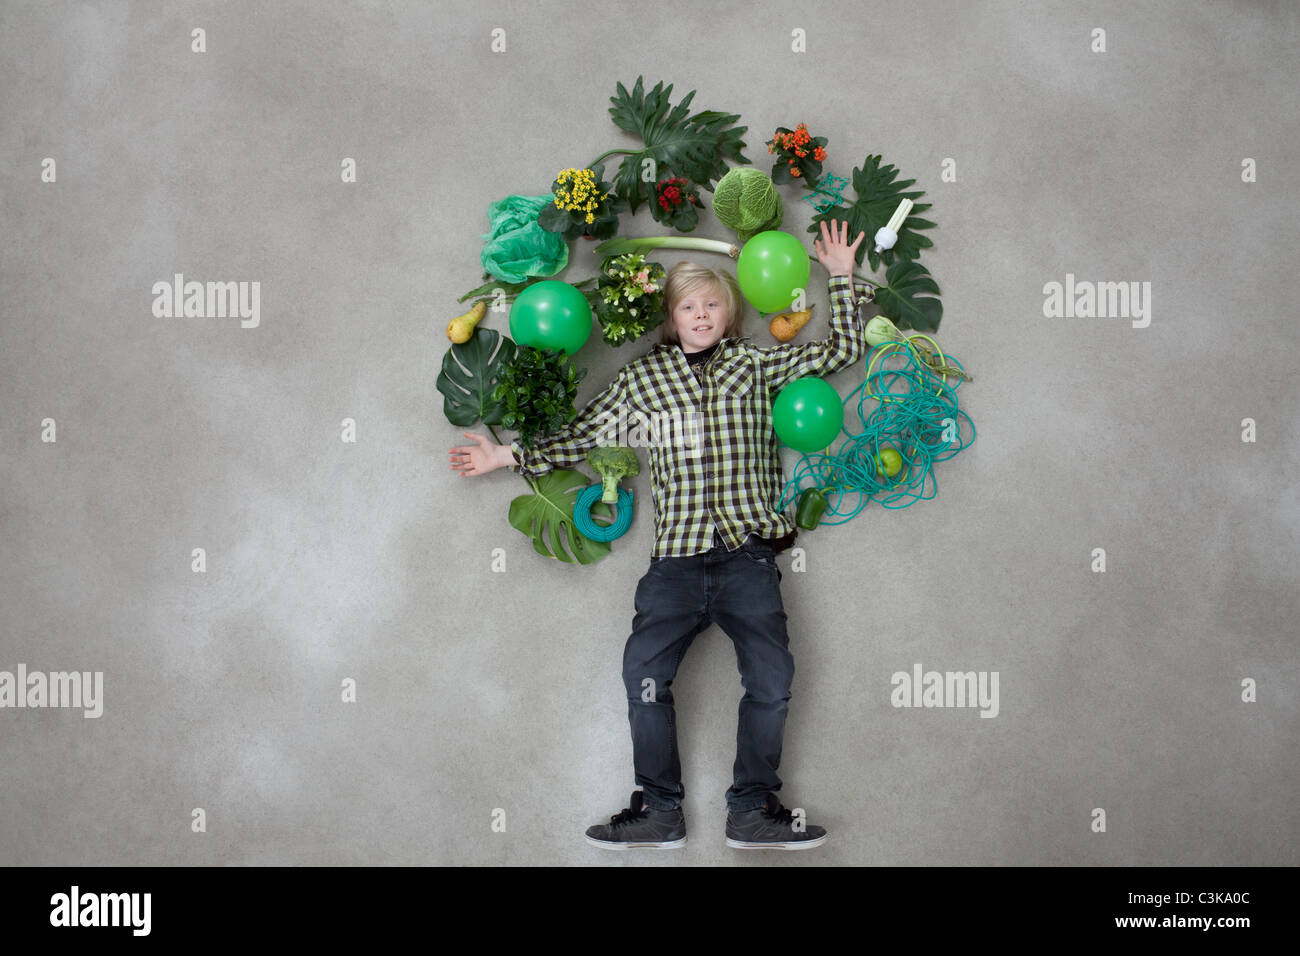 Boy forming tree shape on gray background - Stock Image